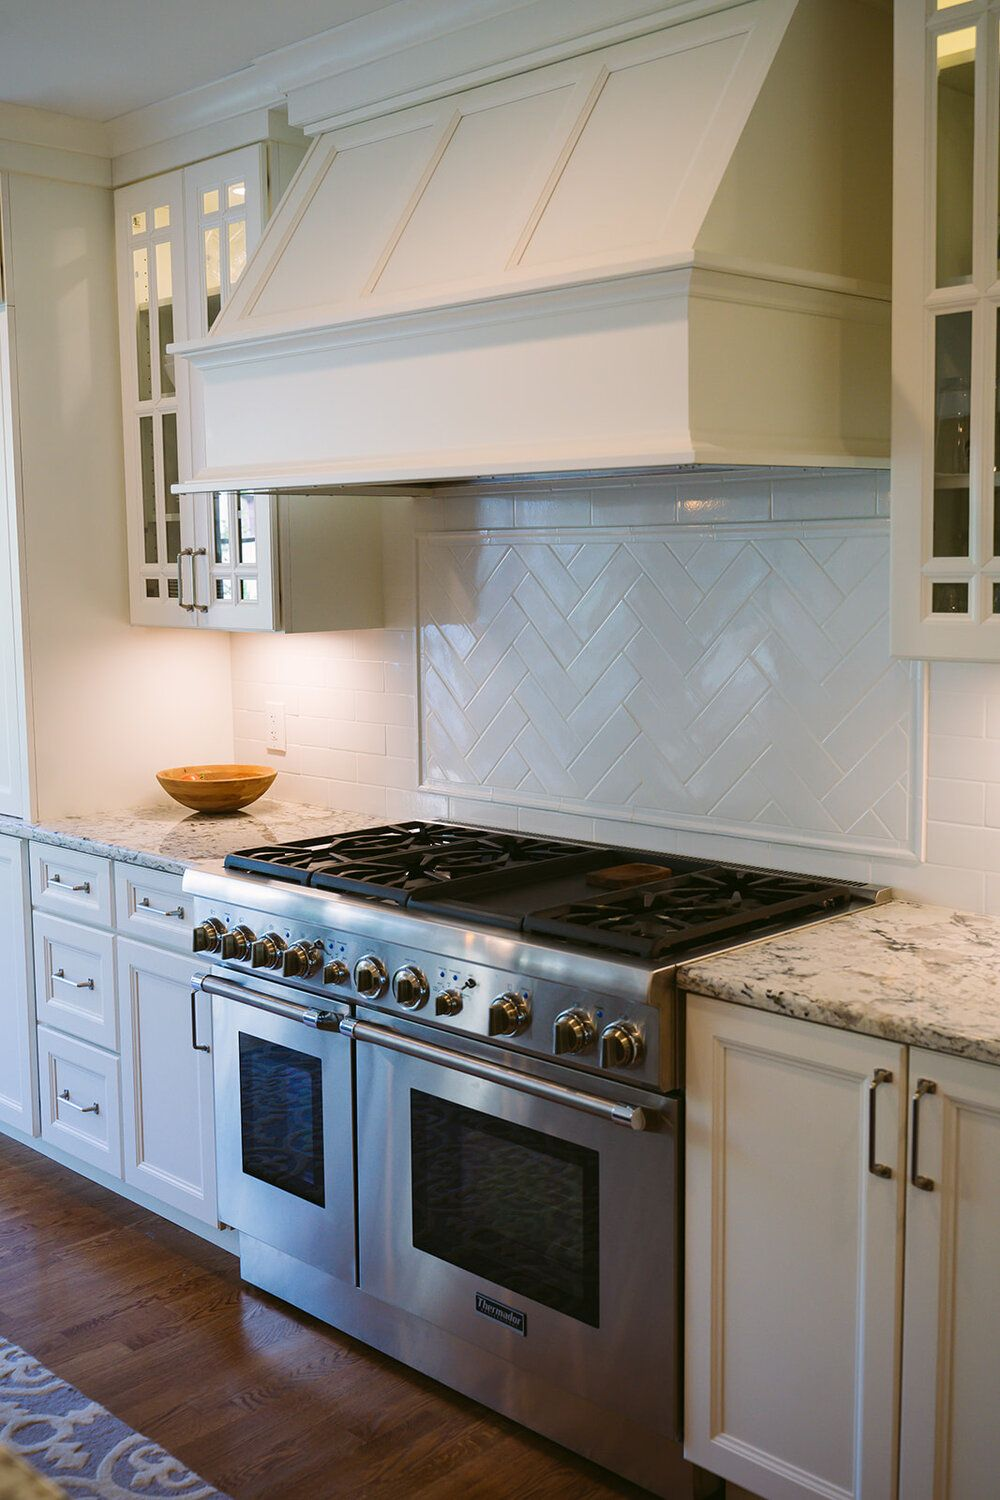 it just keeps getting better thermador appliances chefs kitchen kitchen on kitchen remodel appliances id=43294